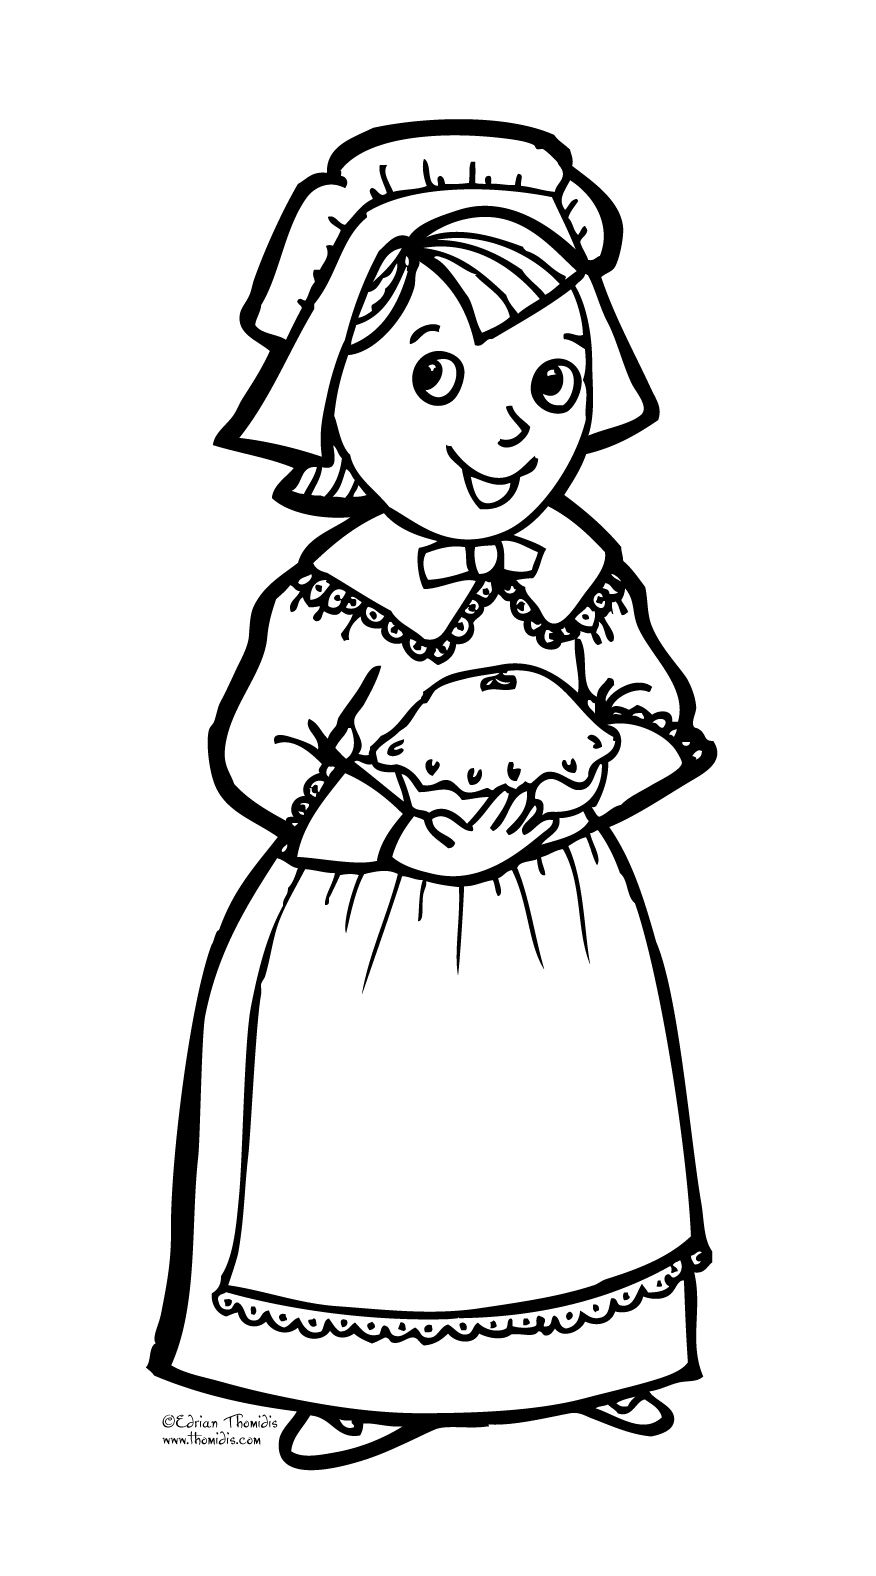 Christian Thanksgiving Coloring Pages (17) pics in our database for ...